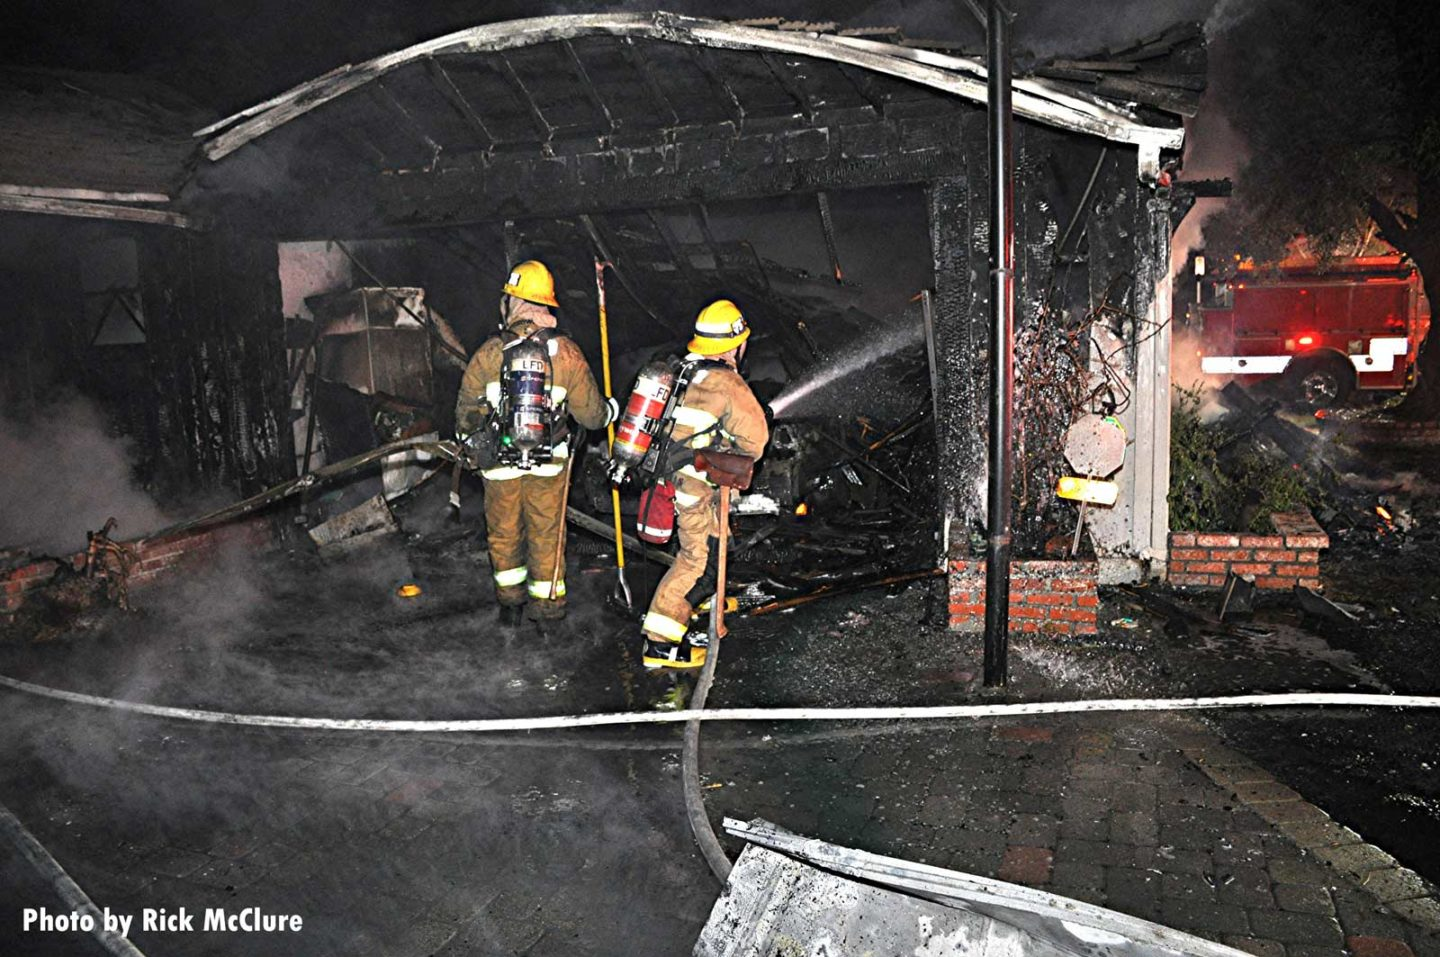 FIrefighters continue to hit hot spots in Los Angeles